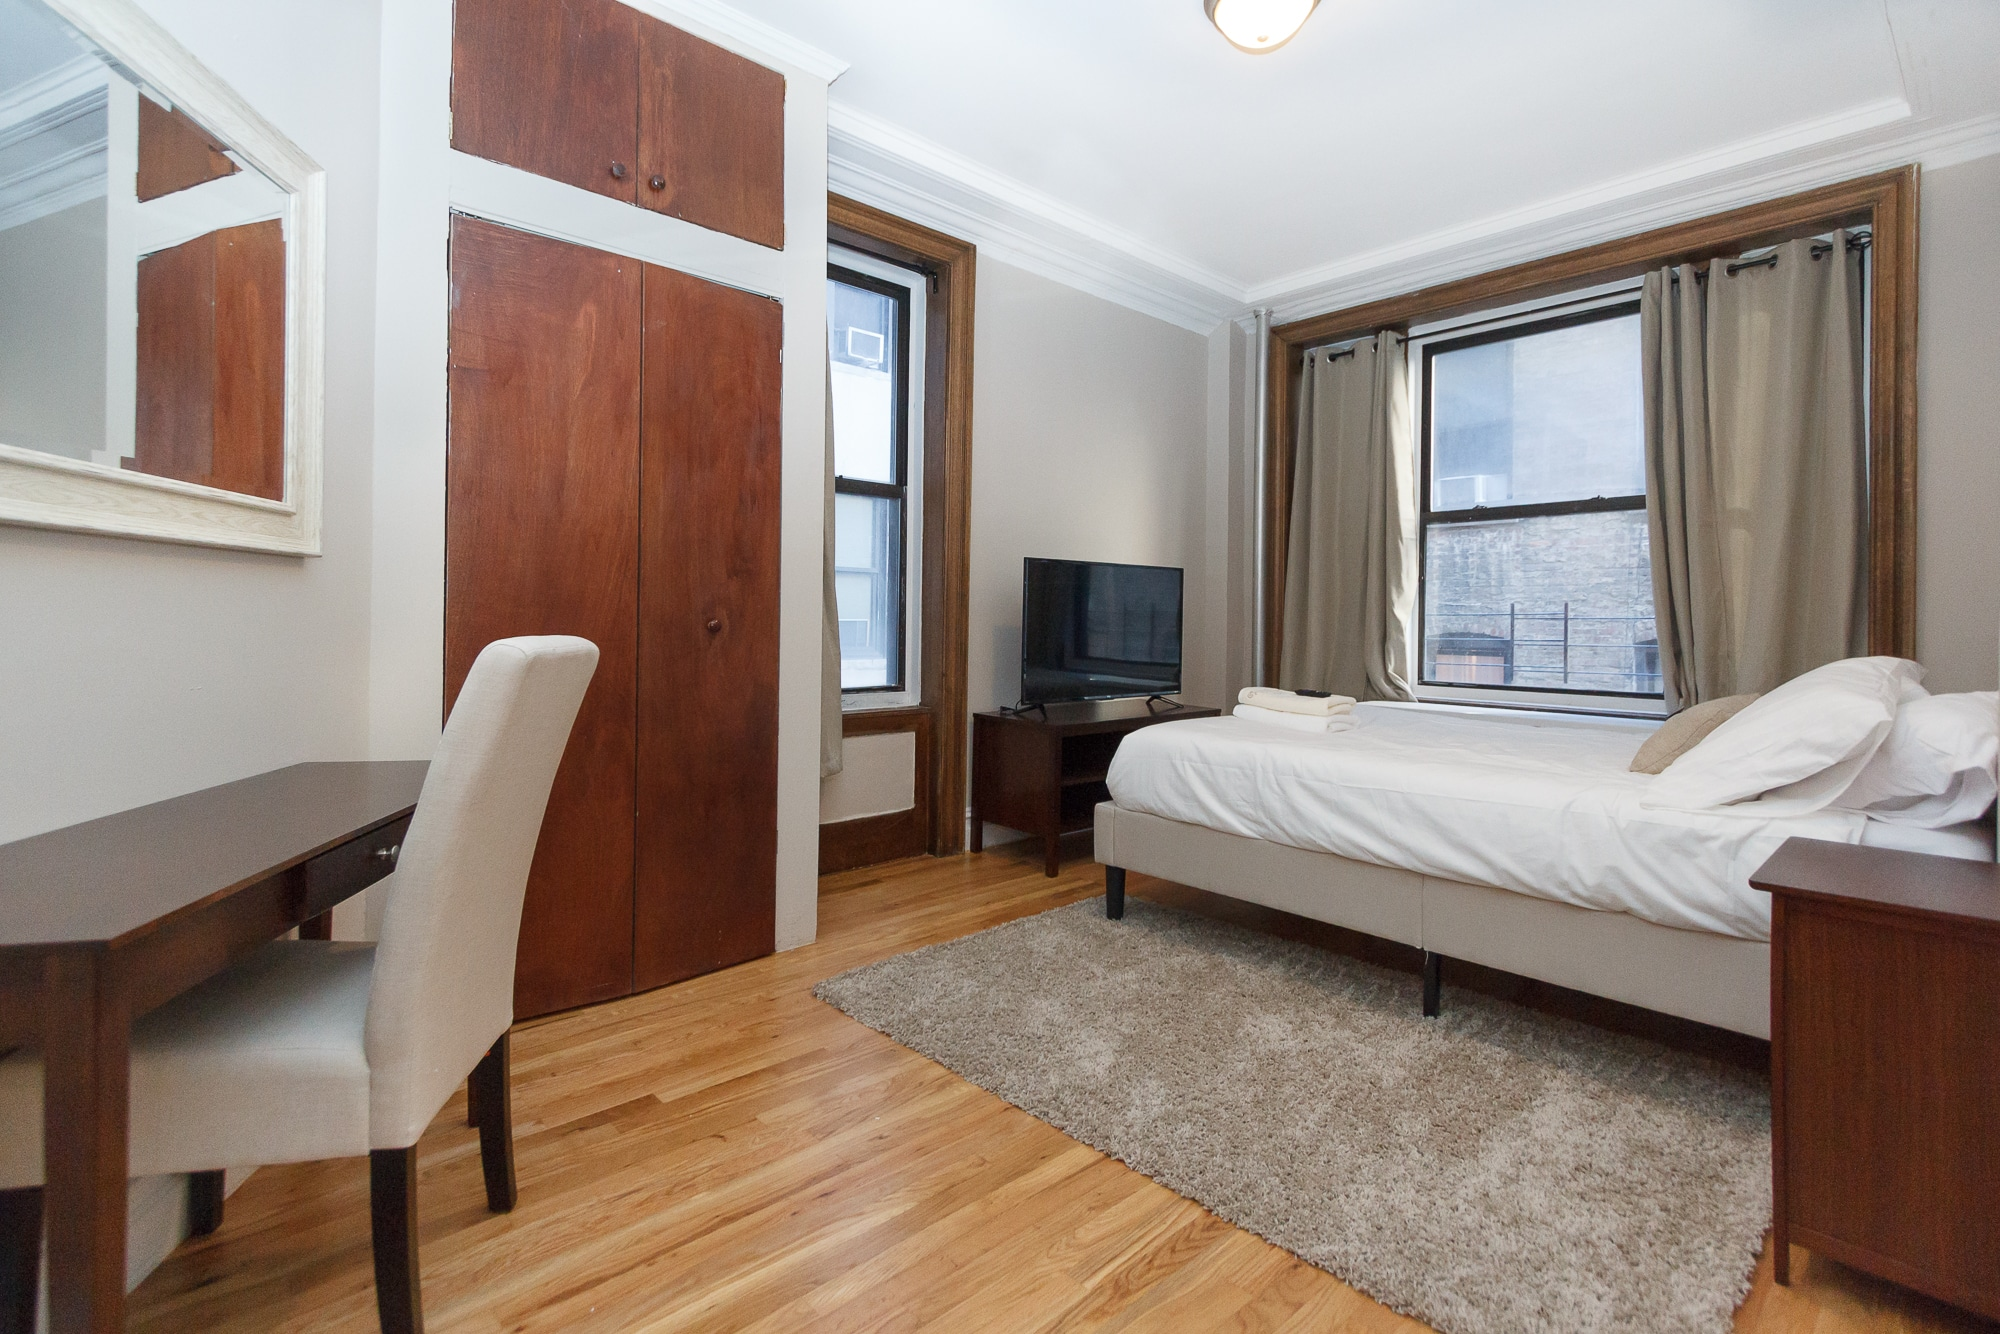 730 Riverside Drive – Private Double Room